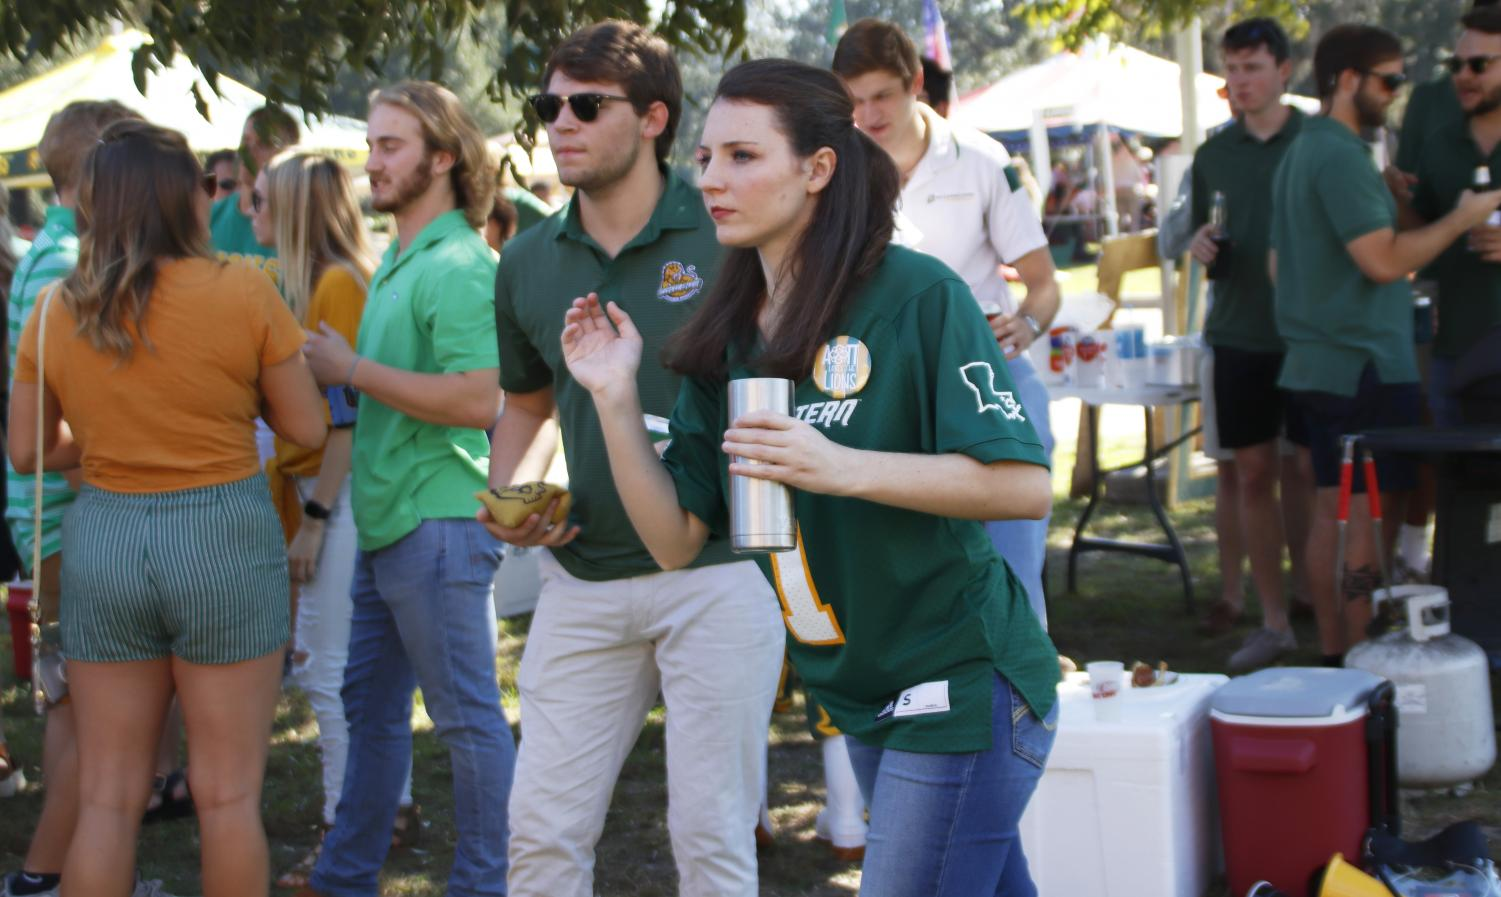 One way that students can meet new people and create relationships is through tailgates at university home games. Dating in college and after graduation can raise differences, but attending social events can bring people of all backgrounds together.